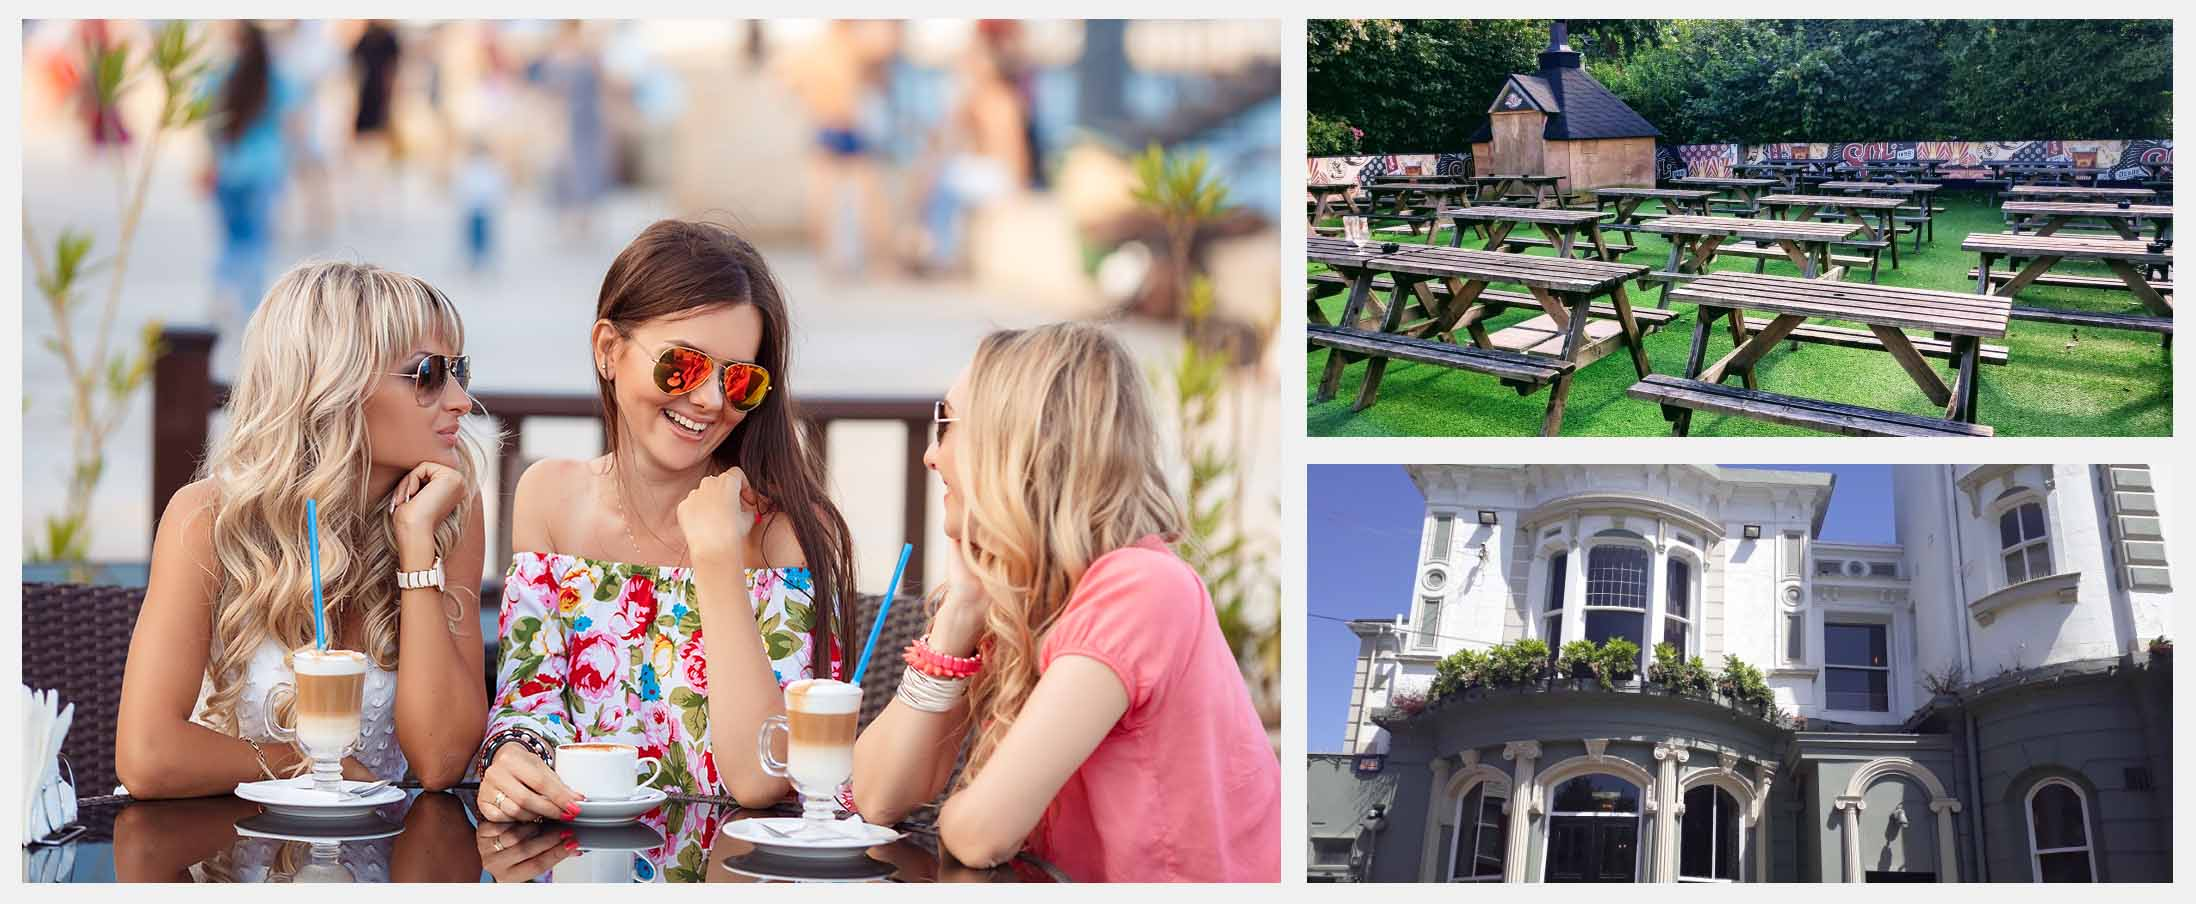 Best Beer Gardens in Liverpool - The Dovey